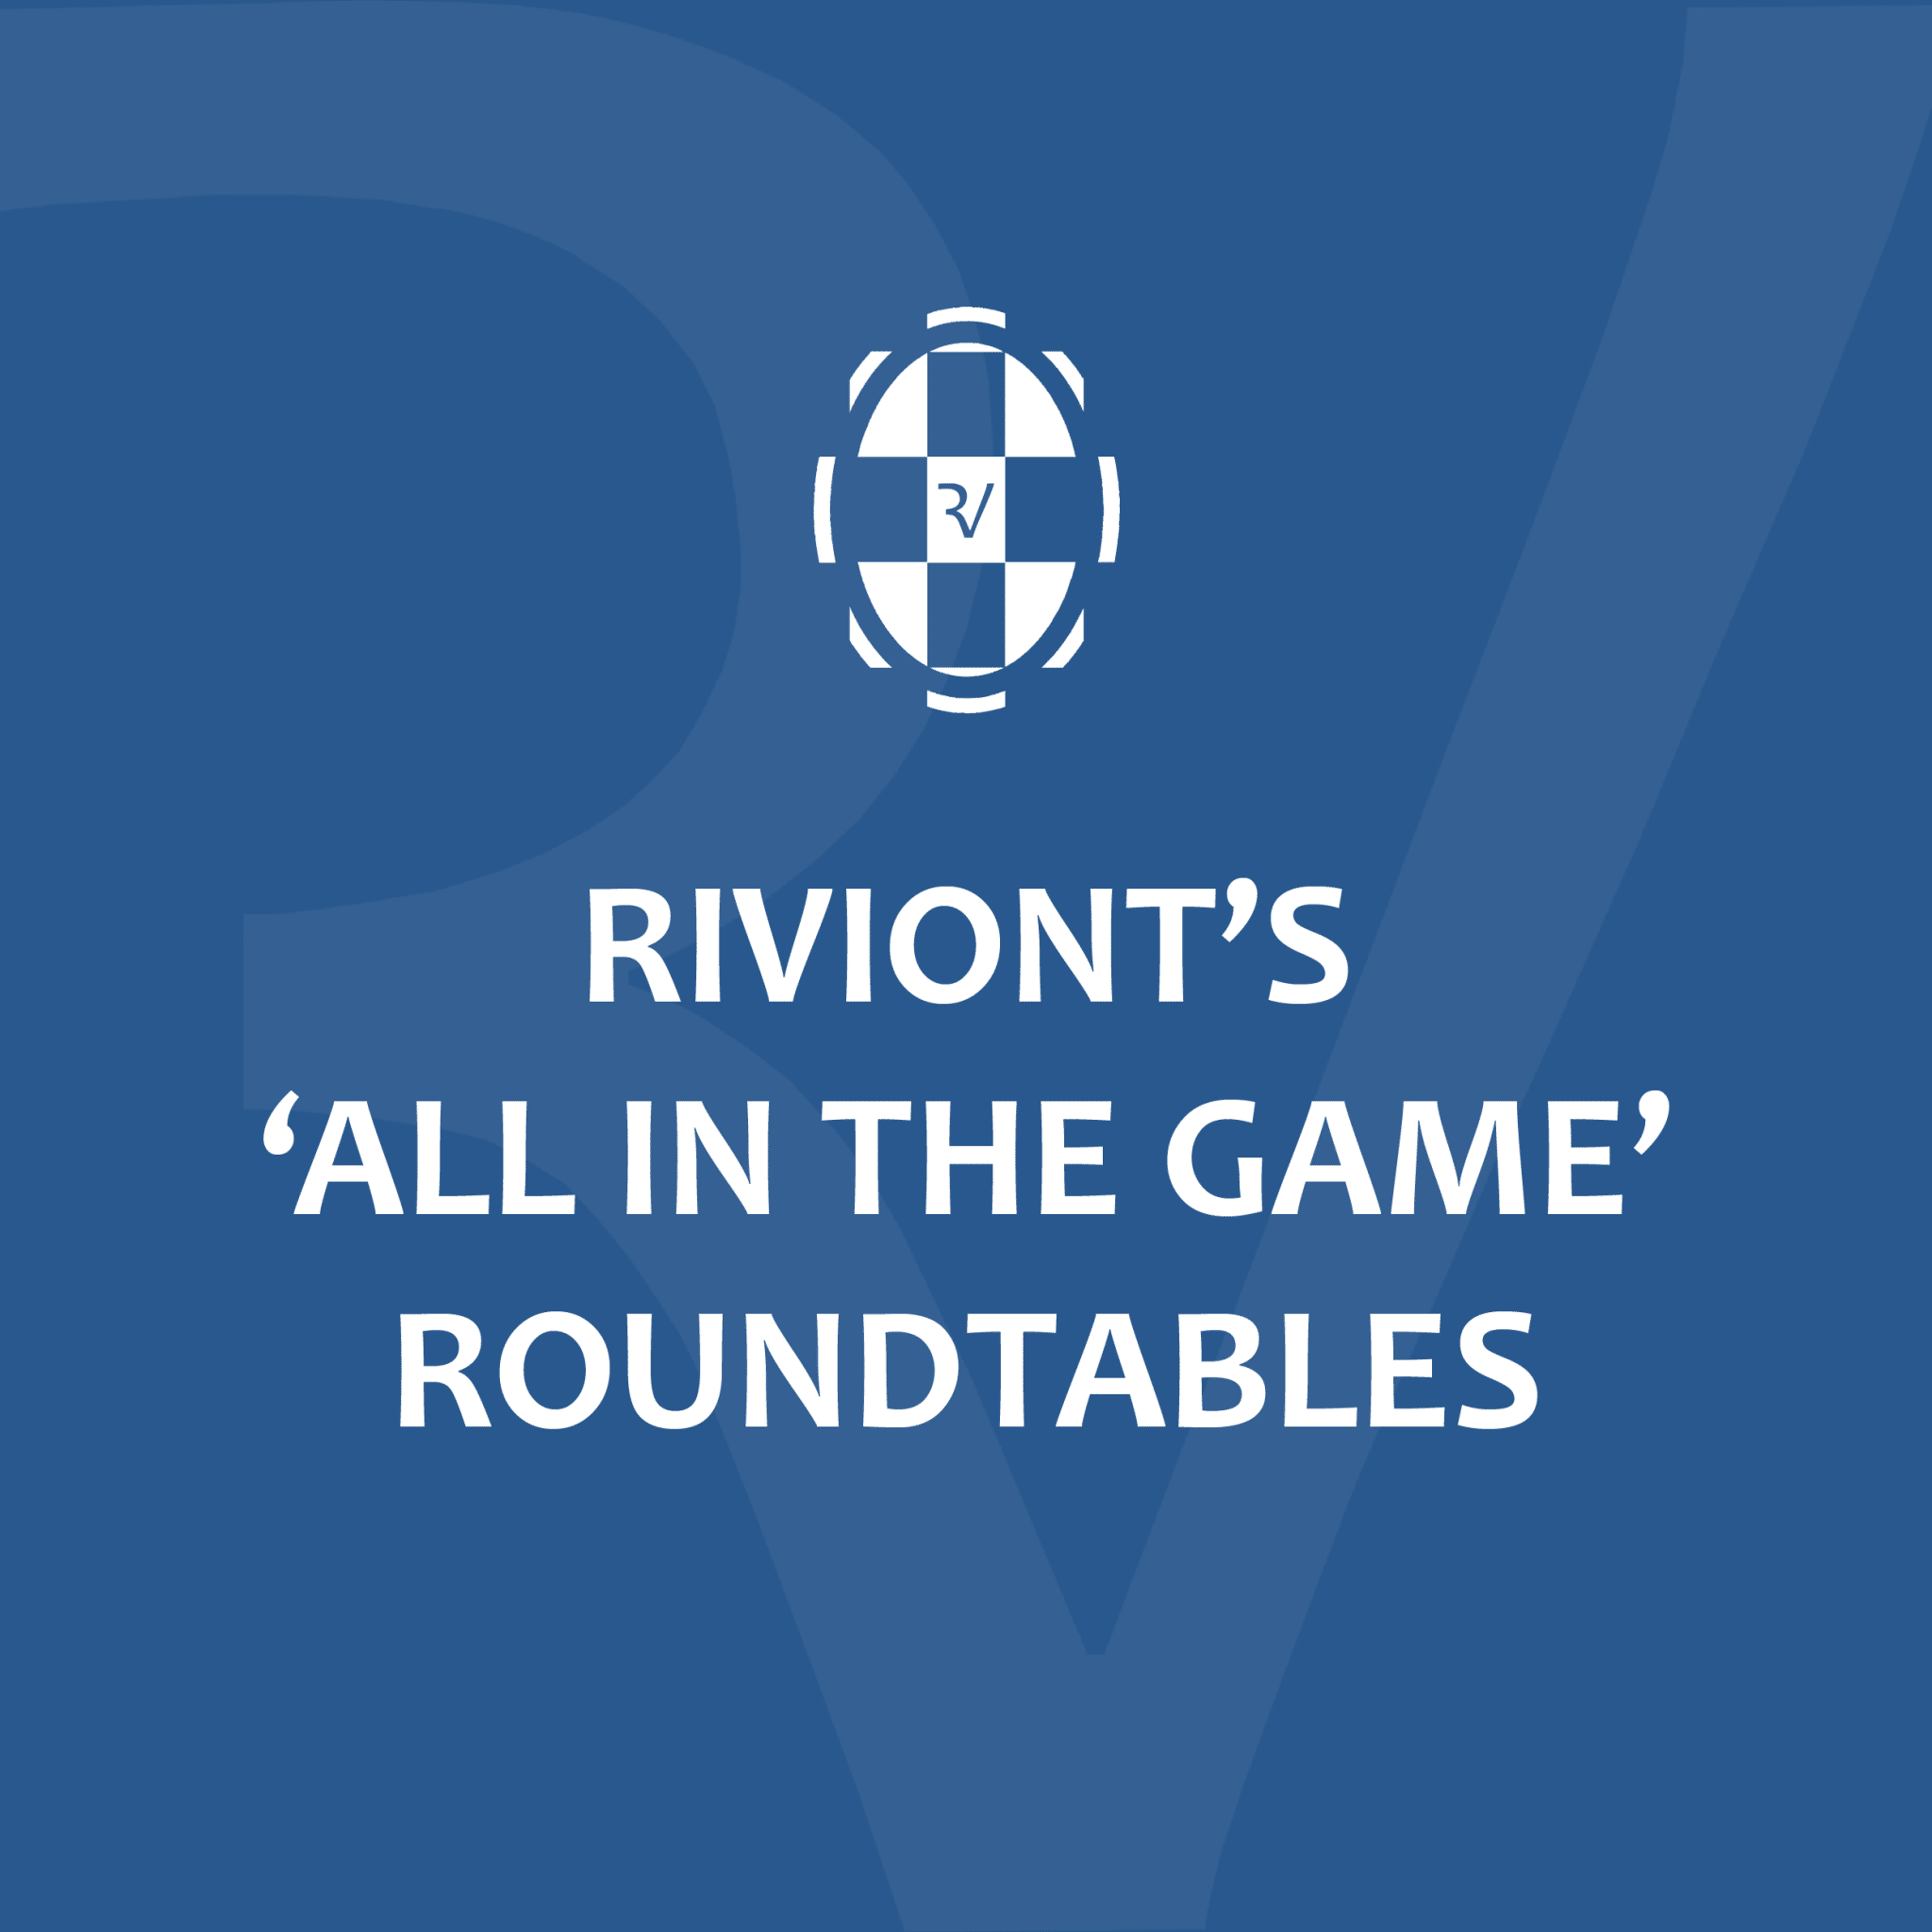 RIVIONT'S 'ALL IN THE GAME' ROUNDTABLES